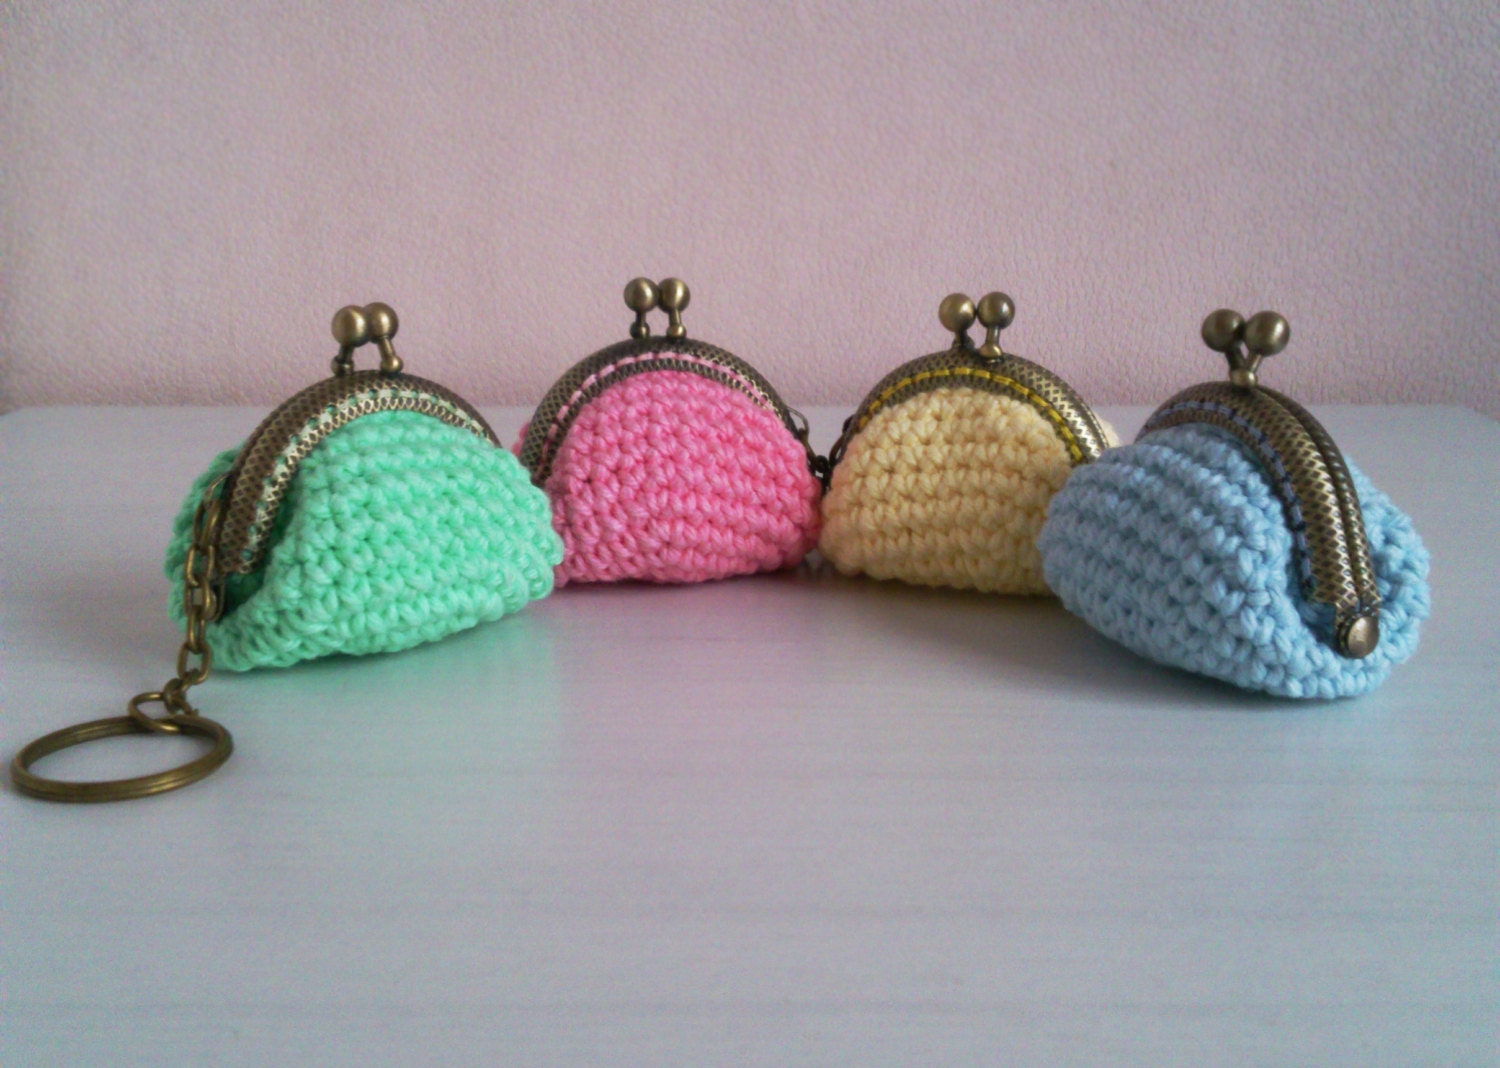 Crochet Coin Bag : Small metal framed coin purse crochet pouch keychain by ohpeach